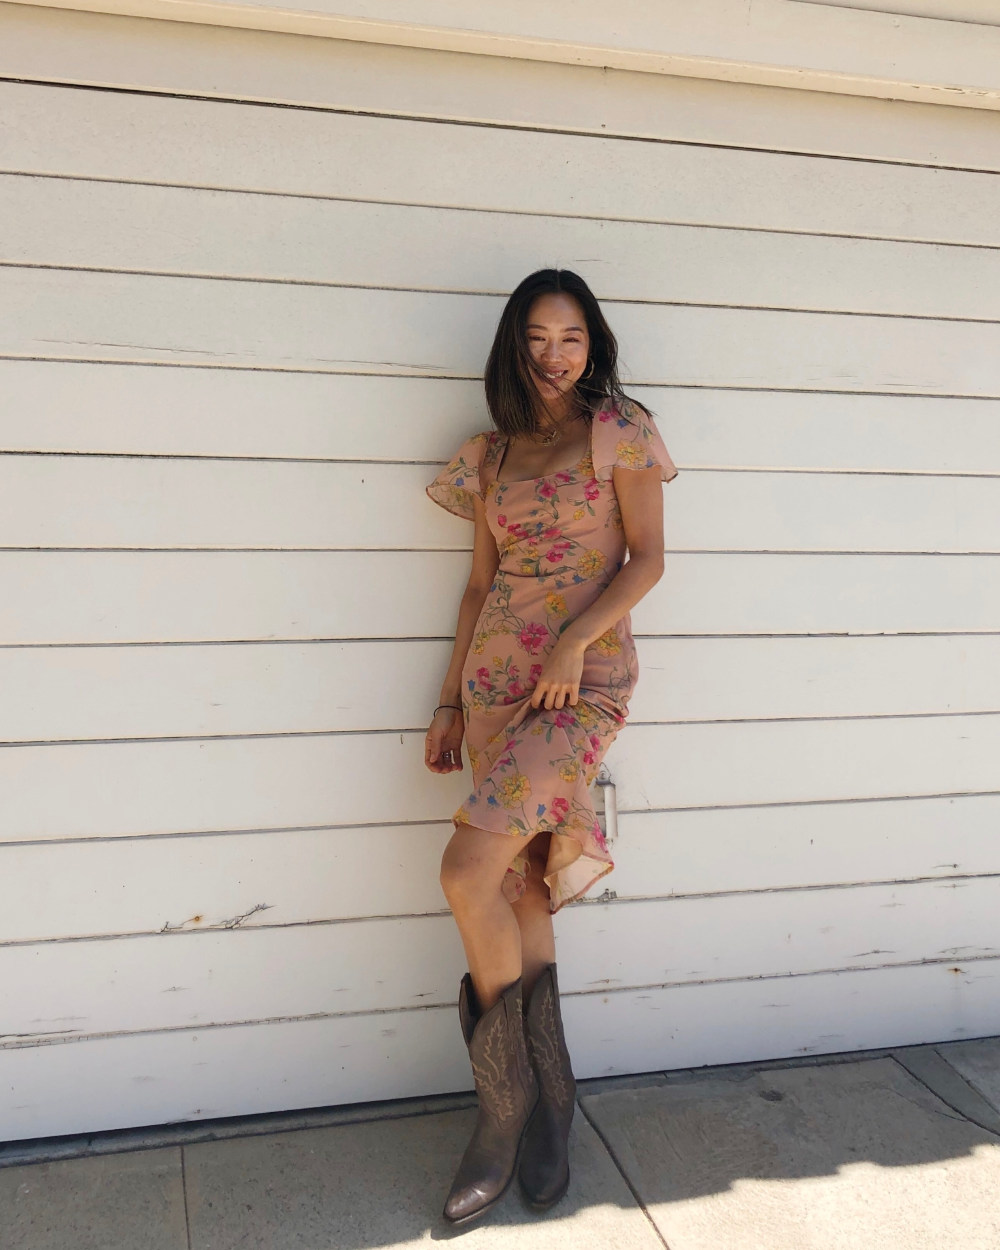 Cowboy Boots Are All You Need To Wear Summer Dresses In Fall Song Of Style Dresses With Cowboy Boots Summer Dresses Cowboy Outfits [ 1250 x 1000 Pixel ]